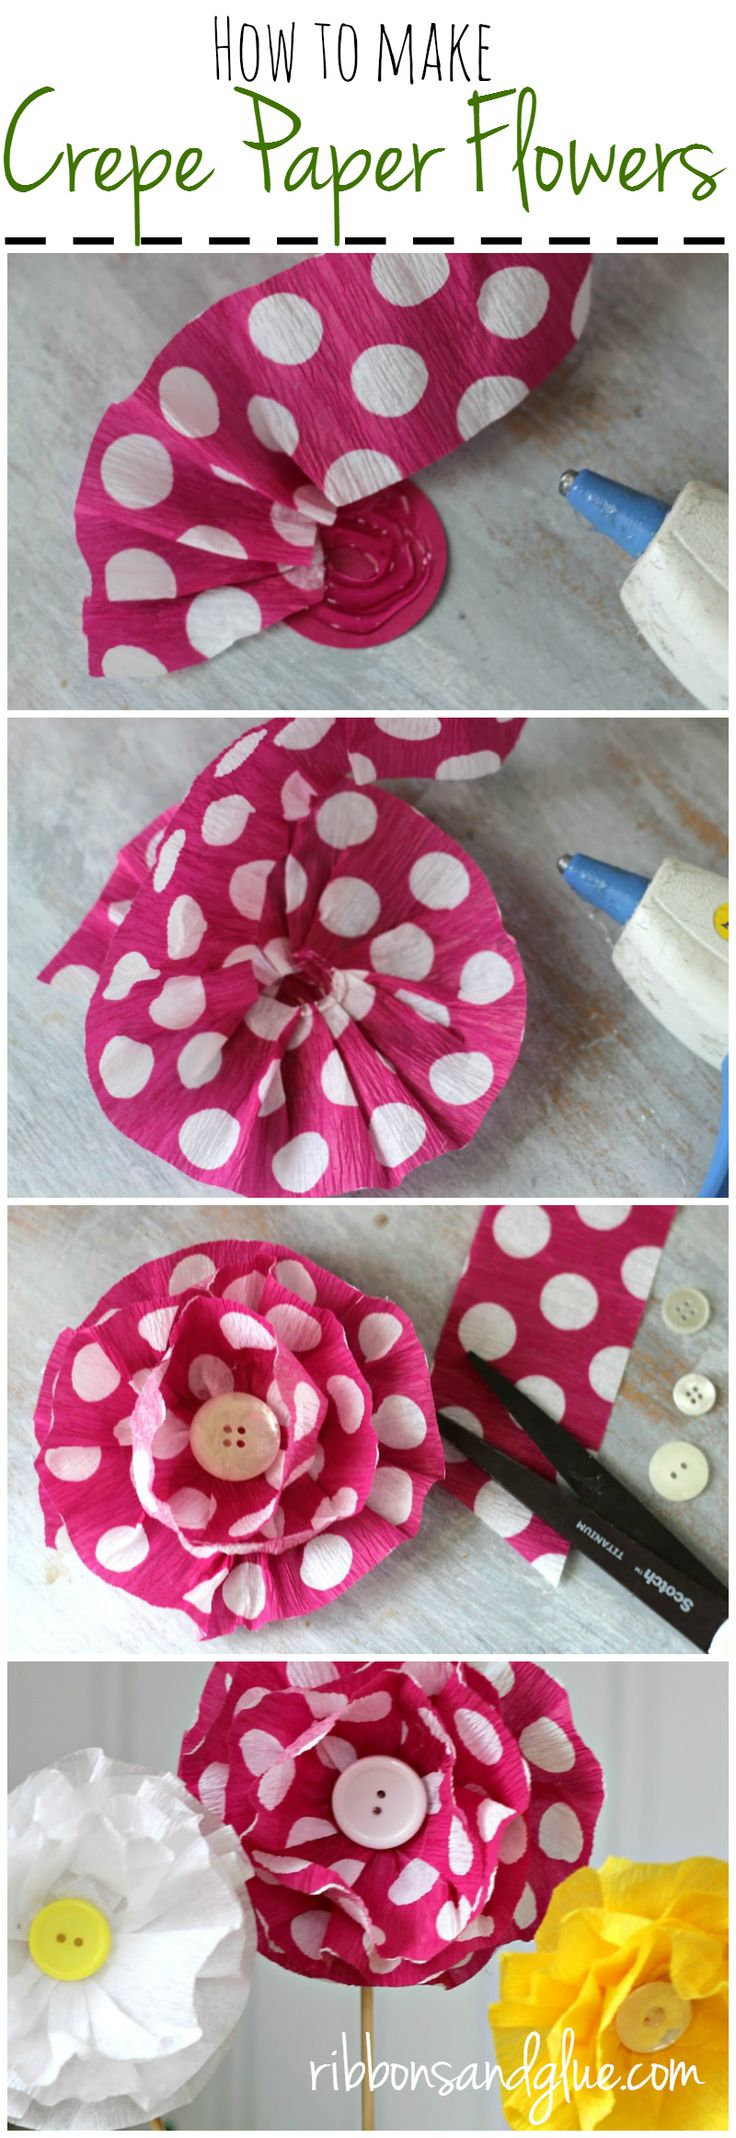 17 Best Images About Ribbons Glue Blog On Pinterest Paper Cones Valentines And Paper